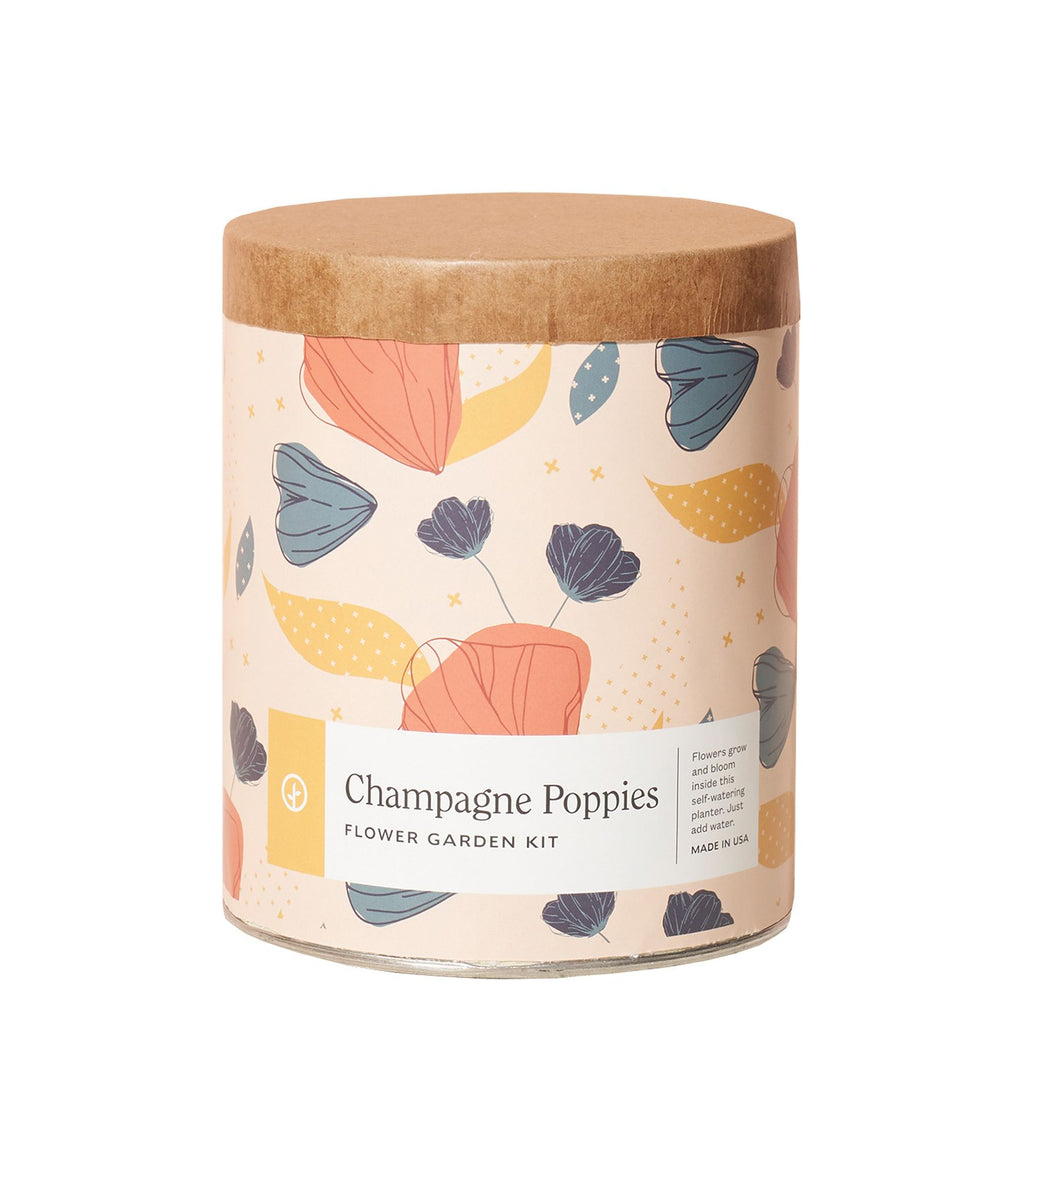 Champagne Poppies Waxed Planter